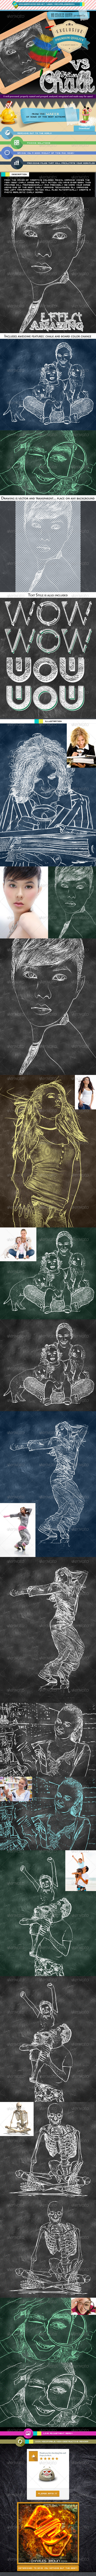 GraphicRiver Pure Art Chalk Drawing 3 7067829